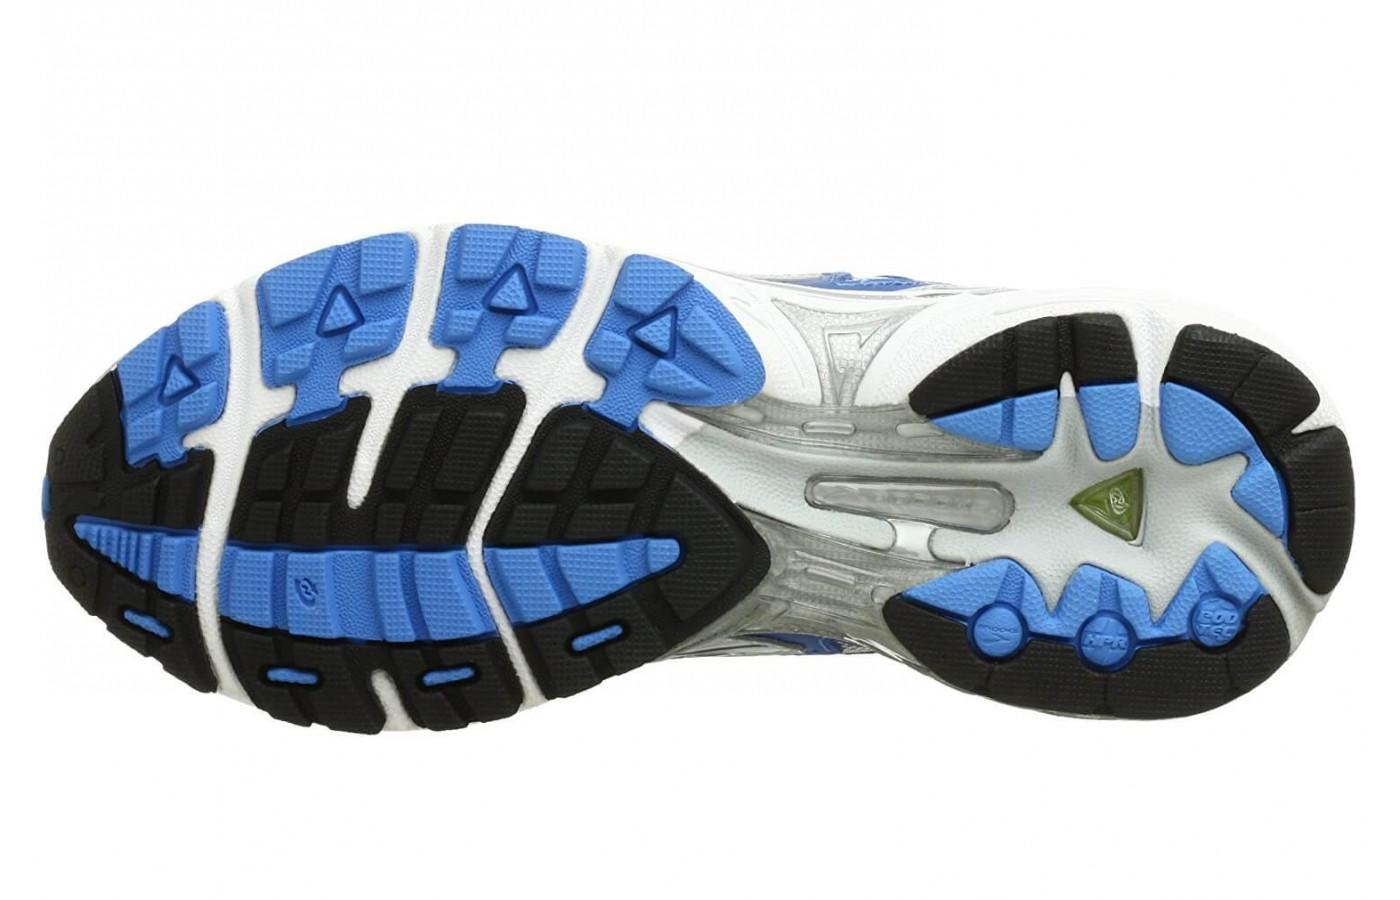 Brooks Adrenaline GTS 8's sole is made of carbon rubber